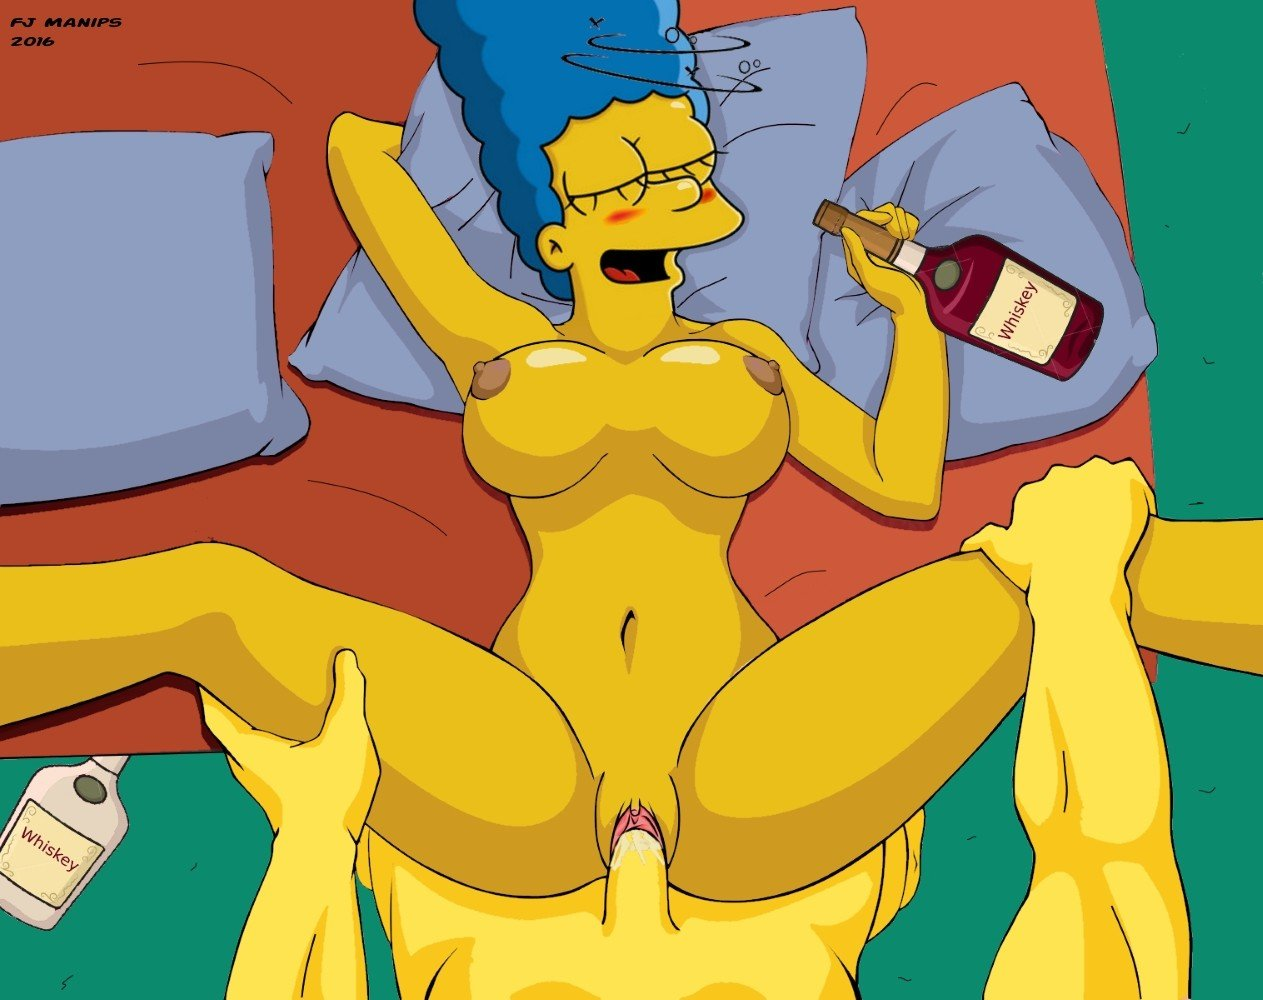 Flashing marge simpson masterbating